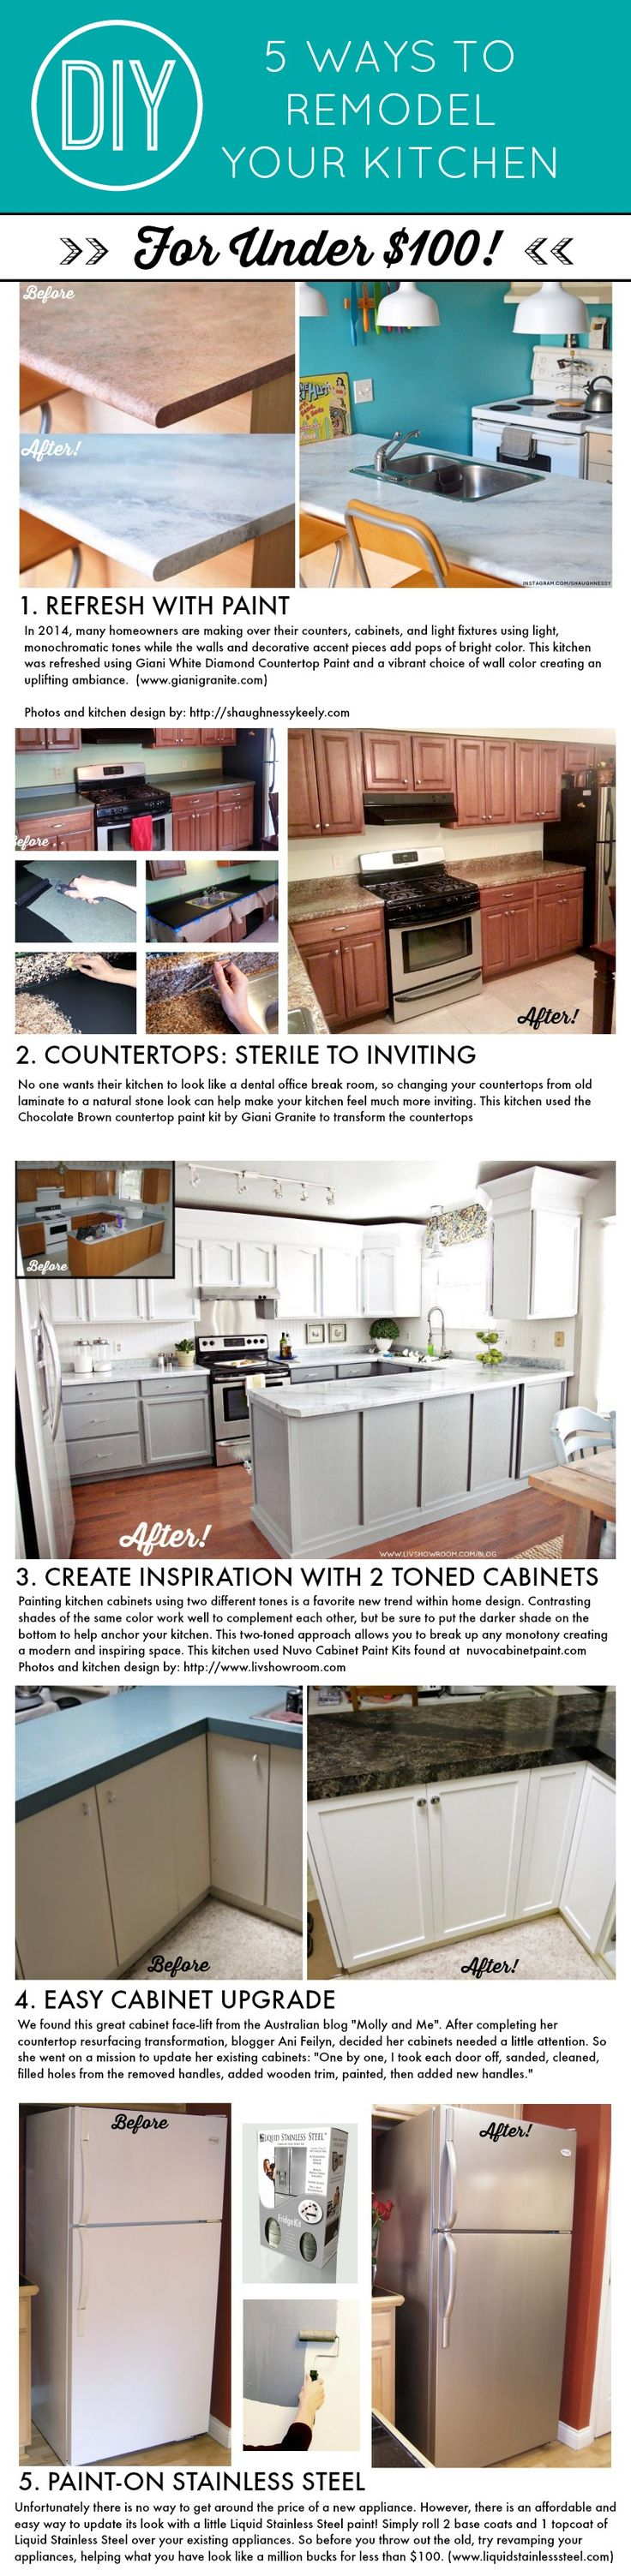 Nuvo Cabinet Paint Reviews Awesome White Countertop Paint Contemporary Best Image Engine